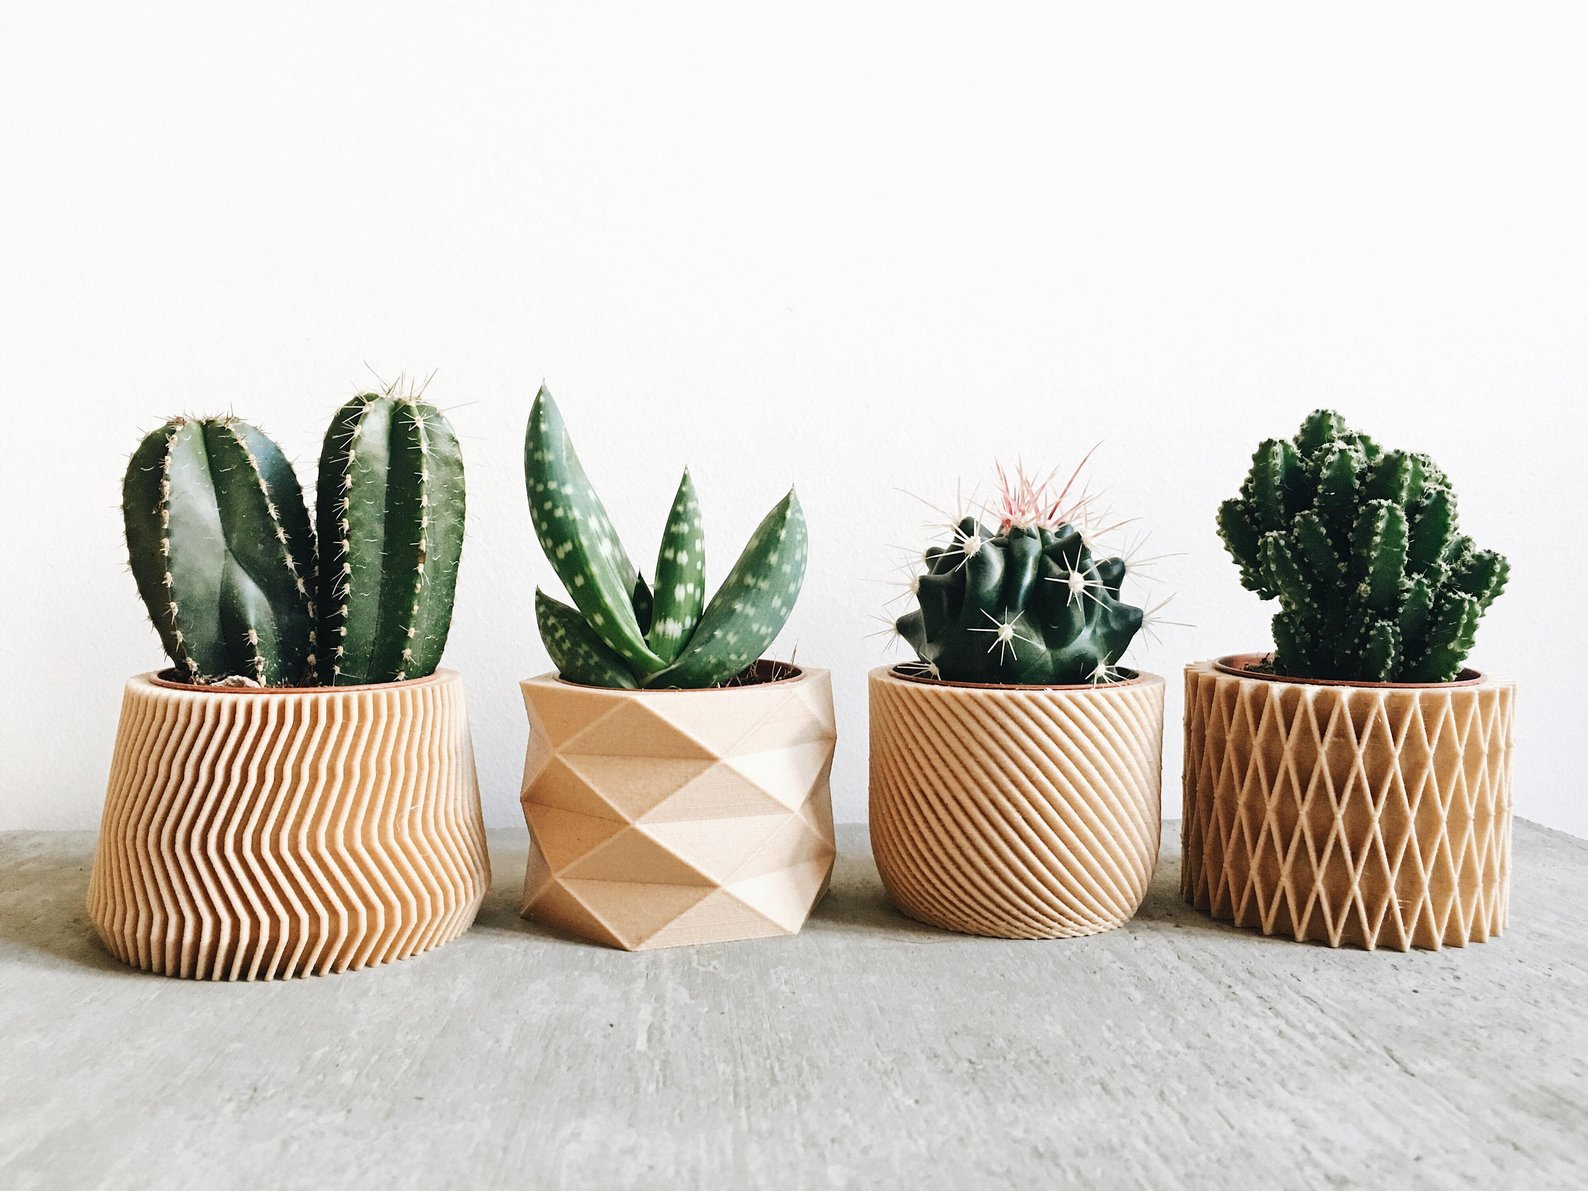 Set of 4 Small Wood Planters for Cactus and Succulents and Minimum Design